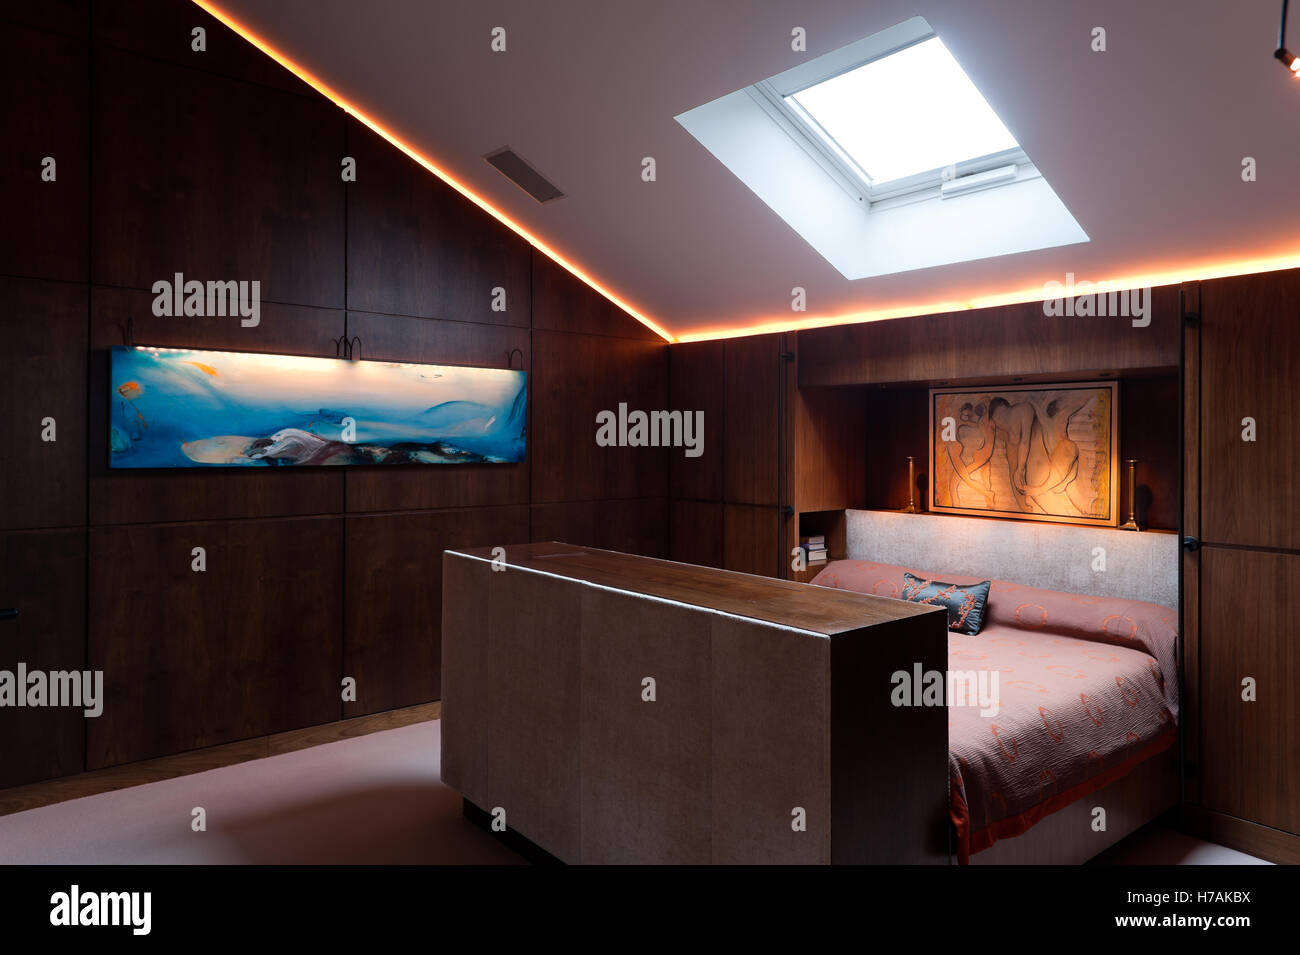 Wood panelled attic bedroom with modern arrt canvas, interior design UK - Stock Image